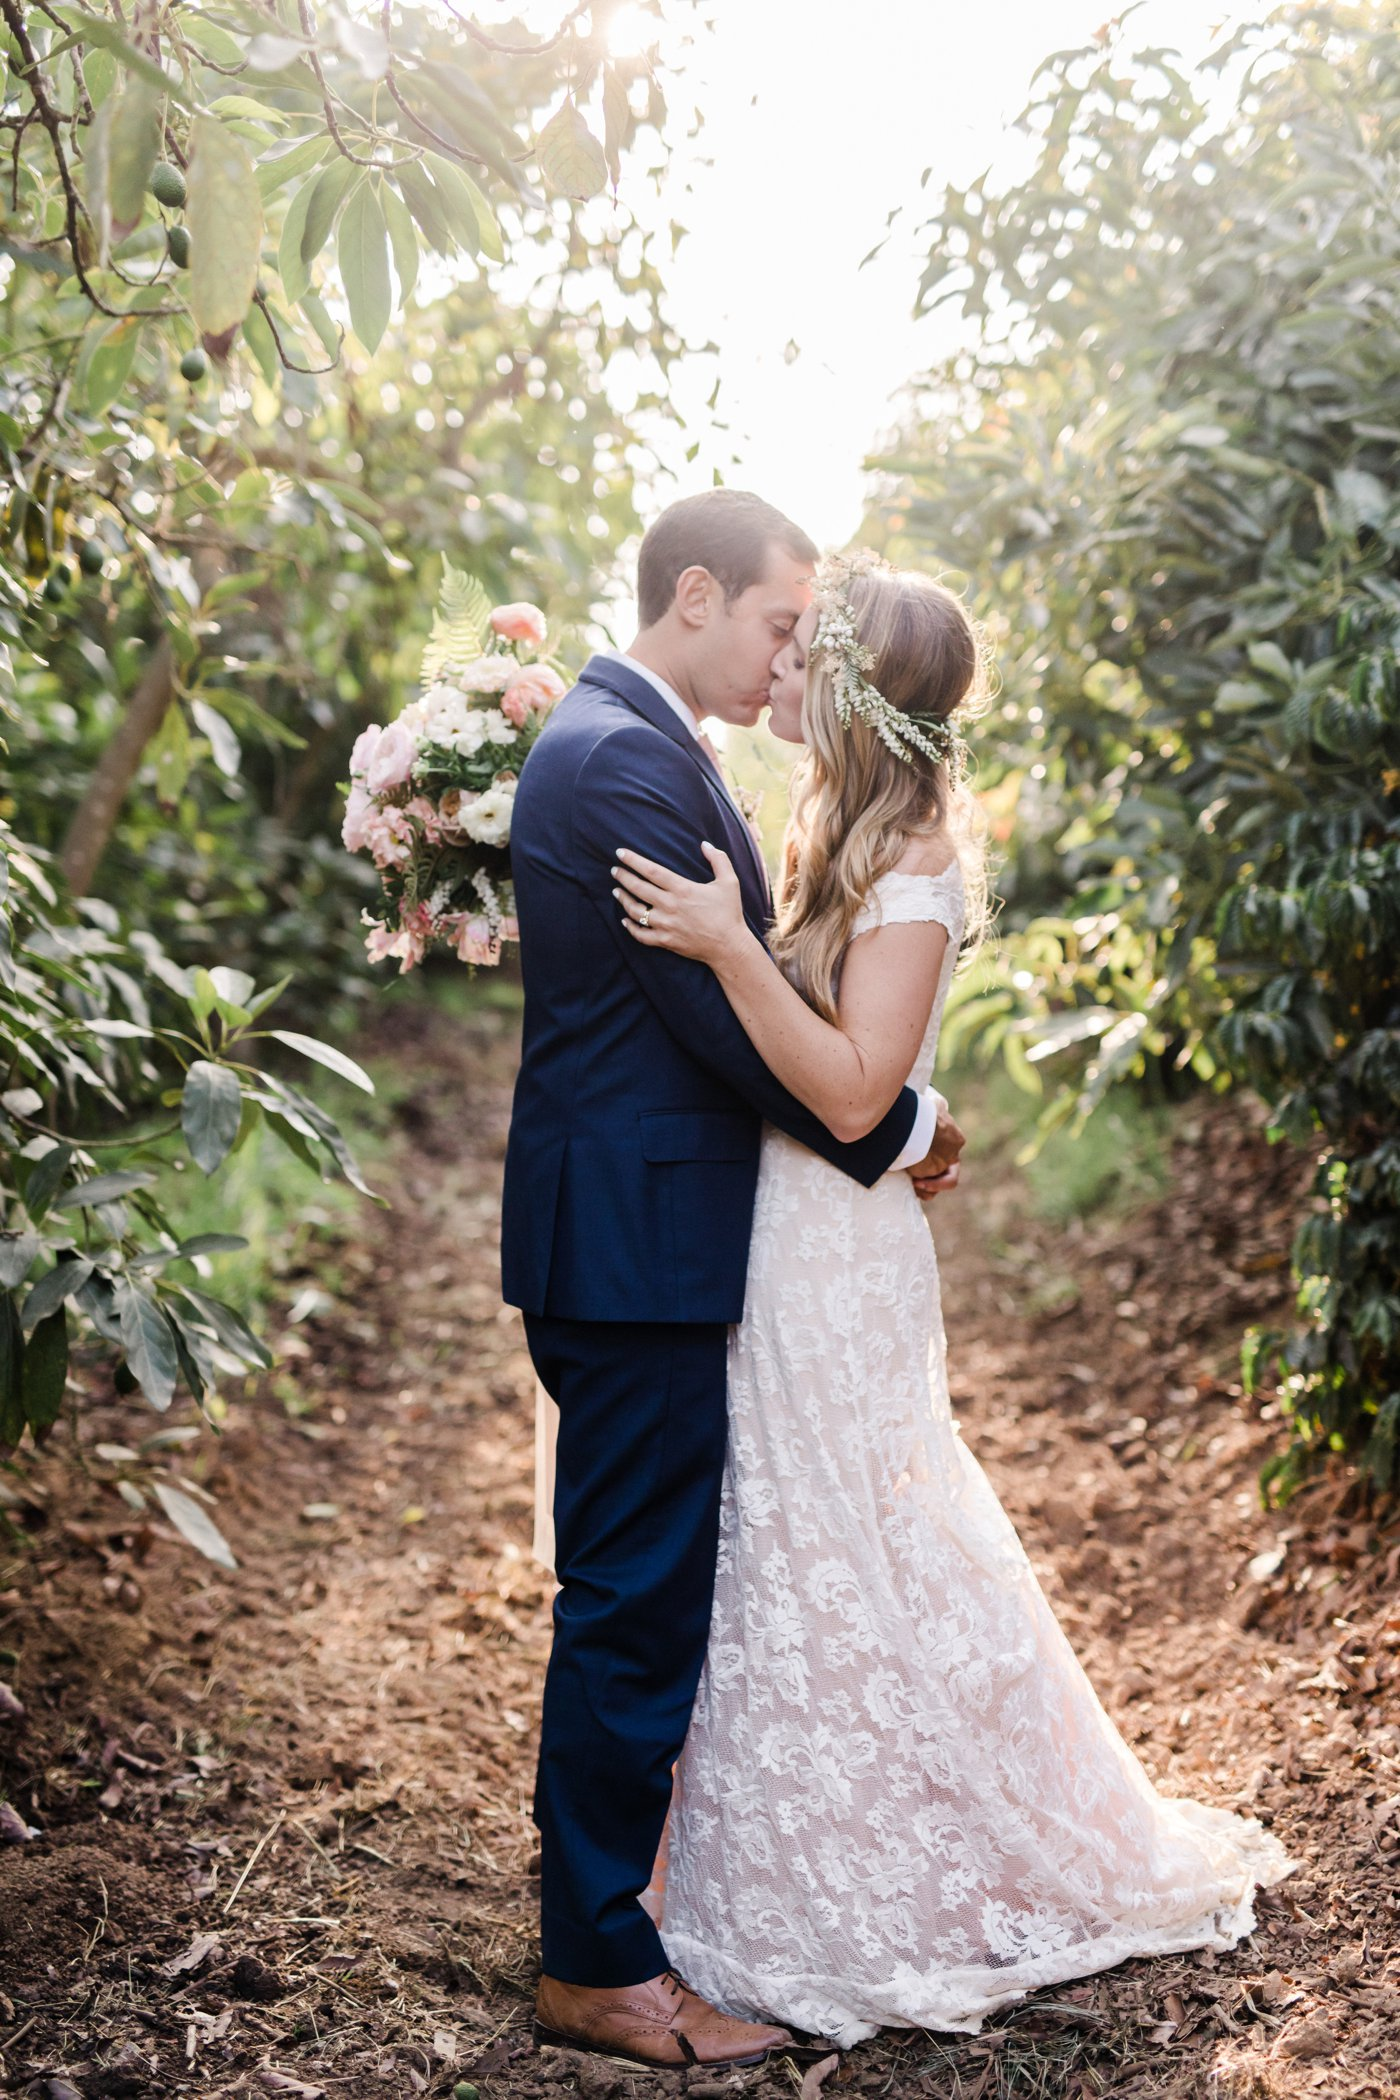 The Newly Married Couple Kissing in the Woods | The Wedding Standard